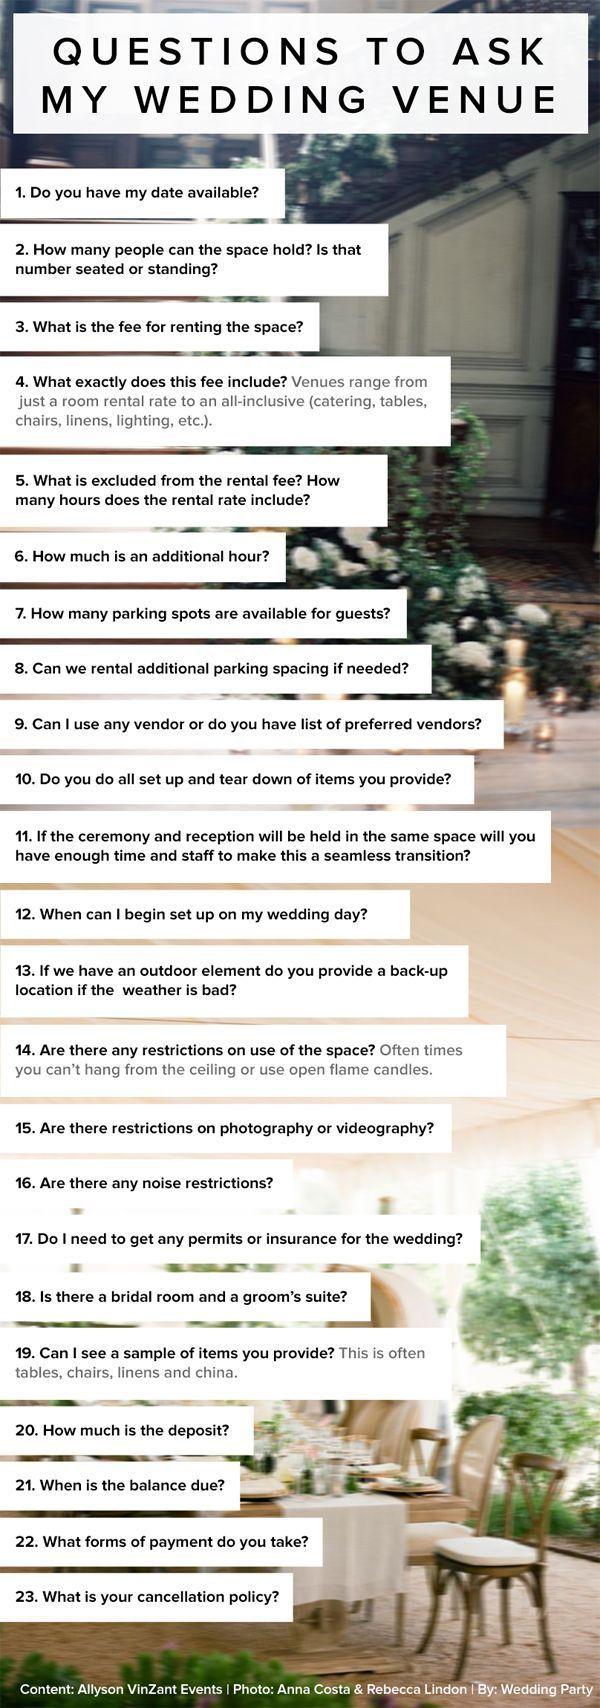 Questions to ask your wedding venue!